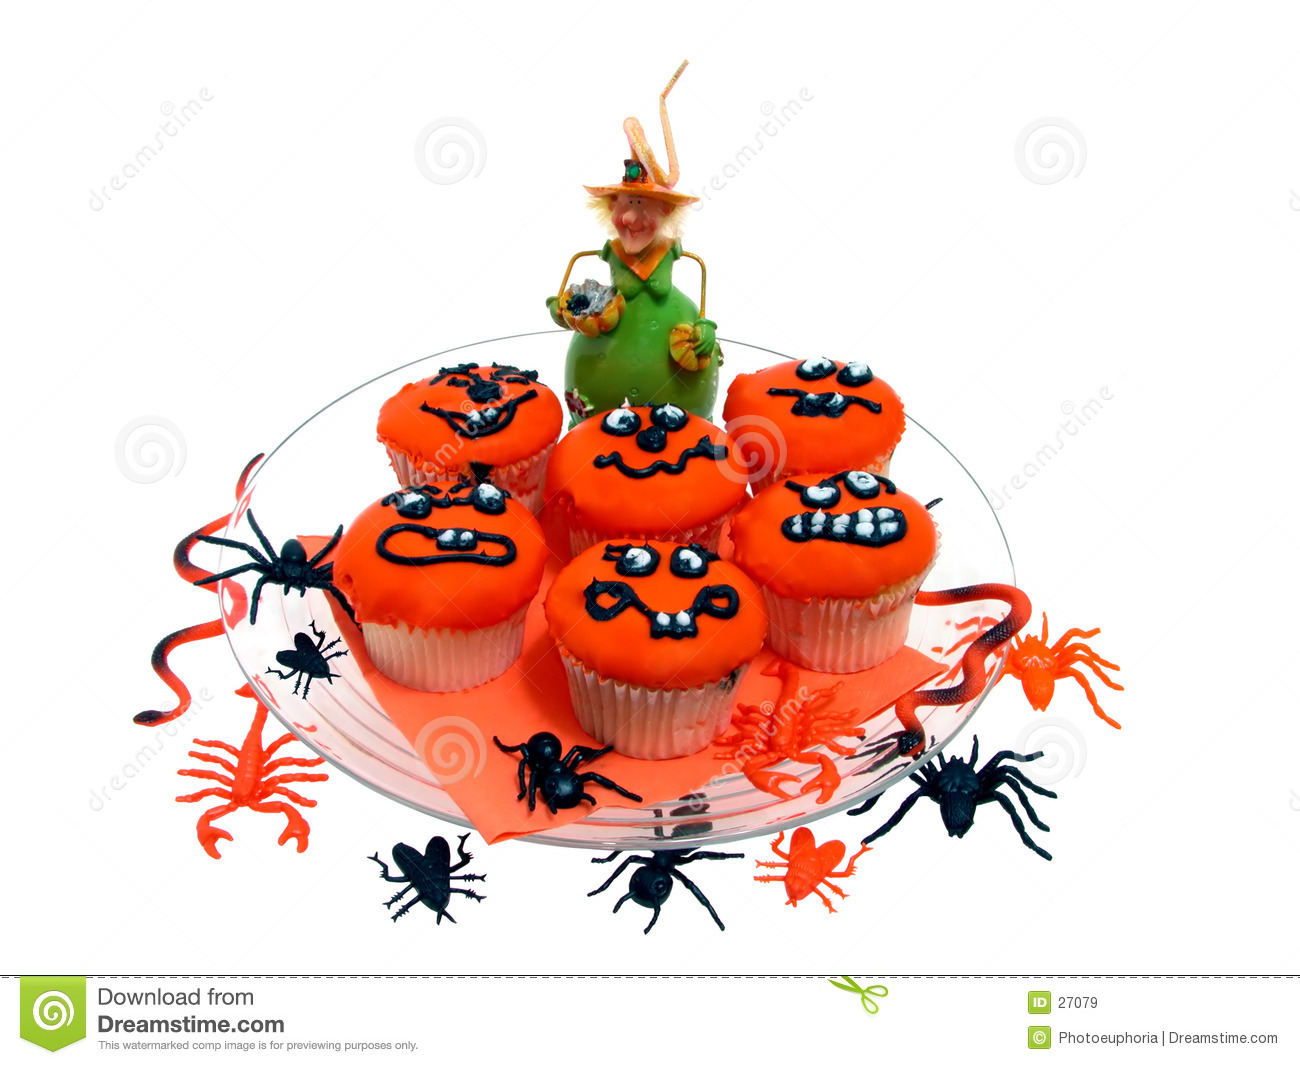 Halloween Cupcakes with Rubber Bugs & Spiders